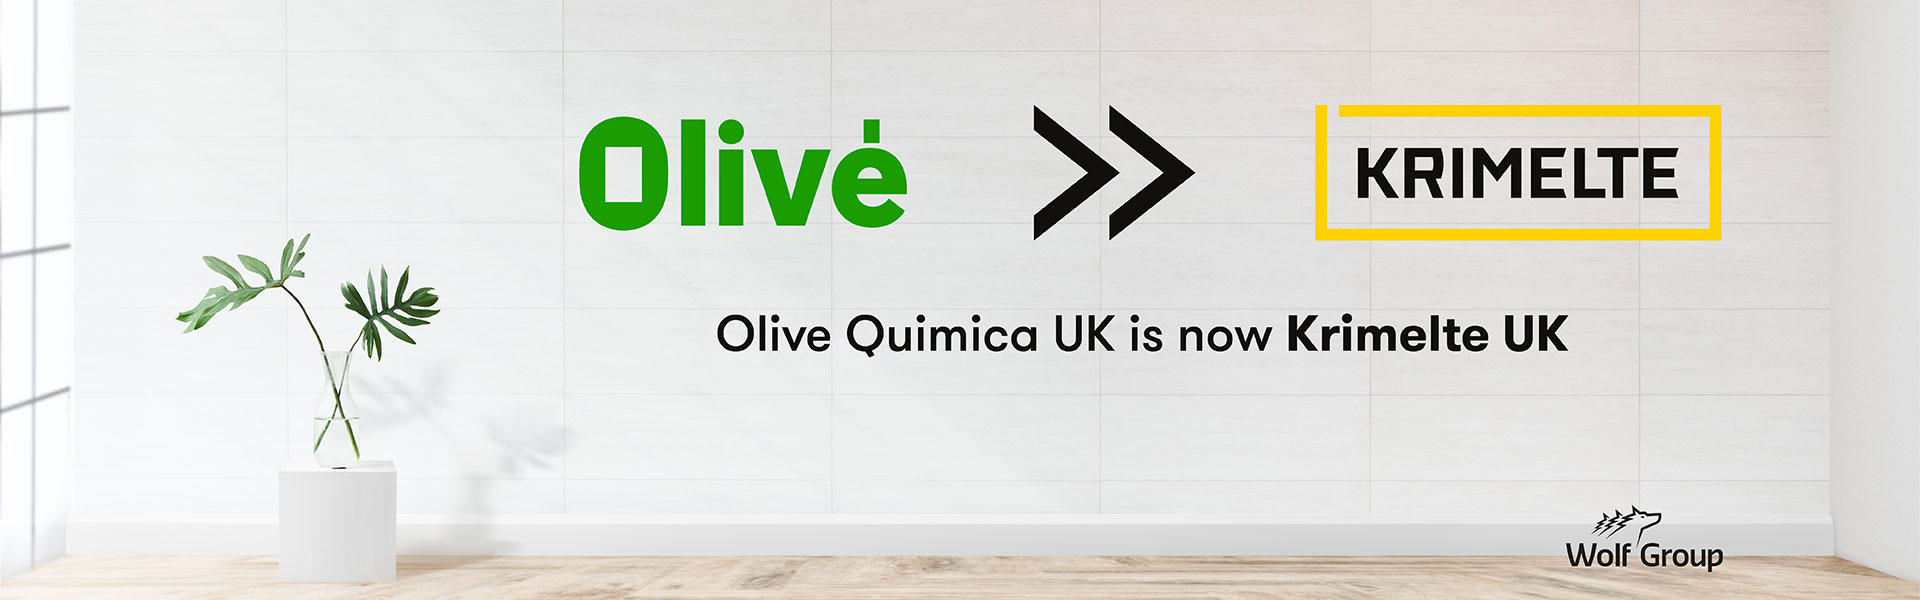 Olivé UK is now Krimelte UK Ltd.